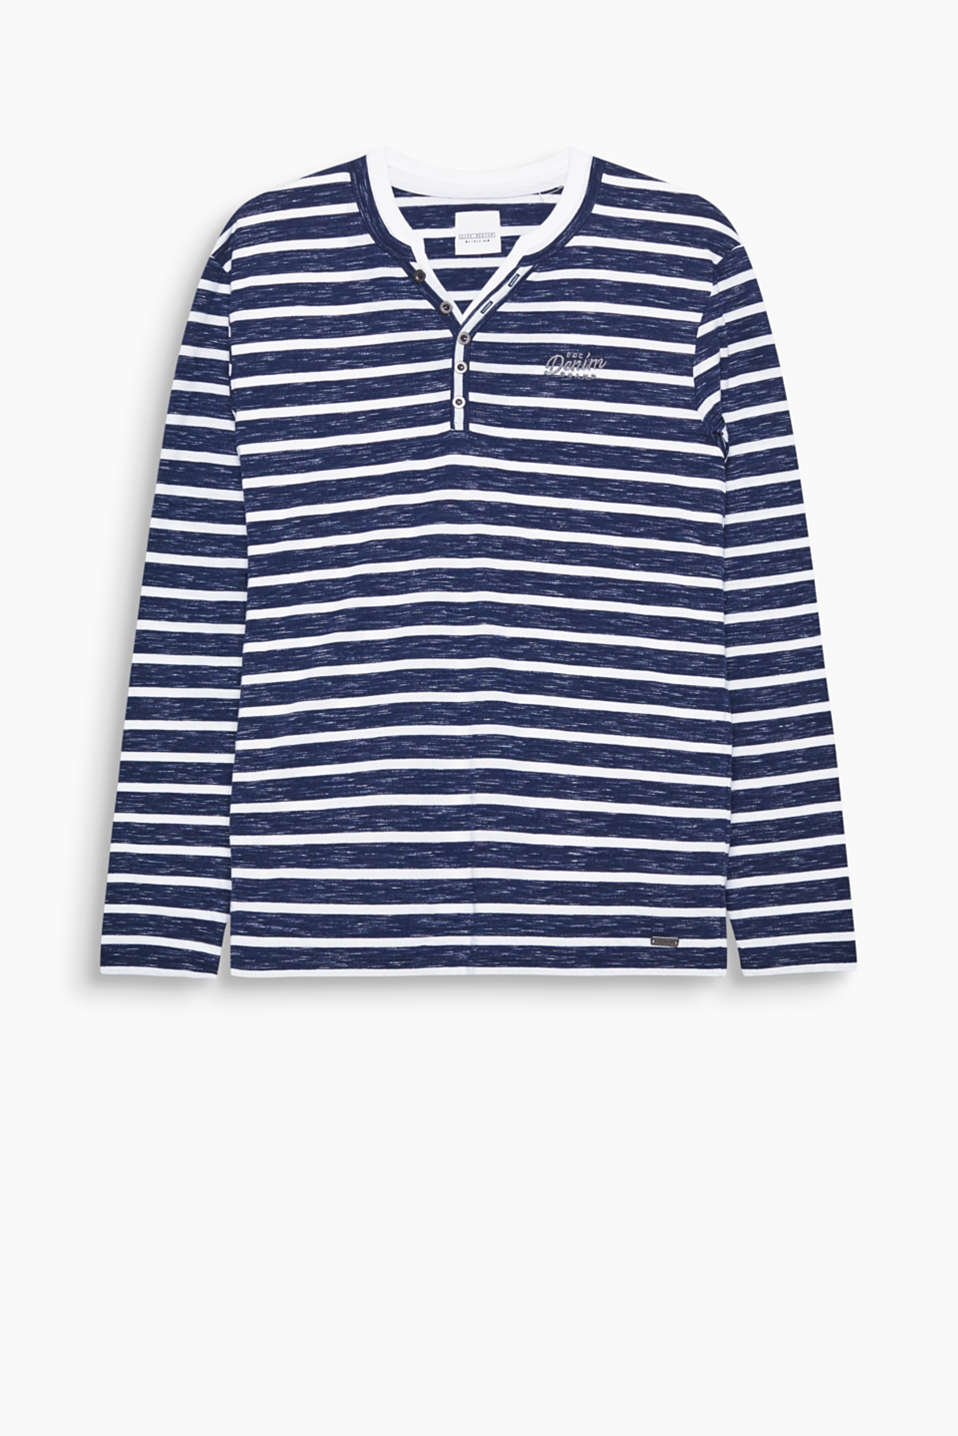 The striking striped pattern make this Henley style long sleeve top an urban favourite